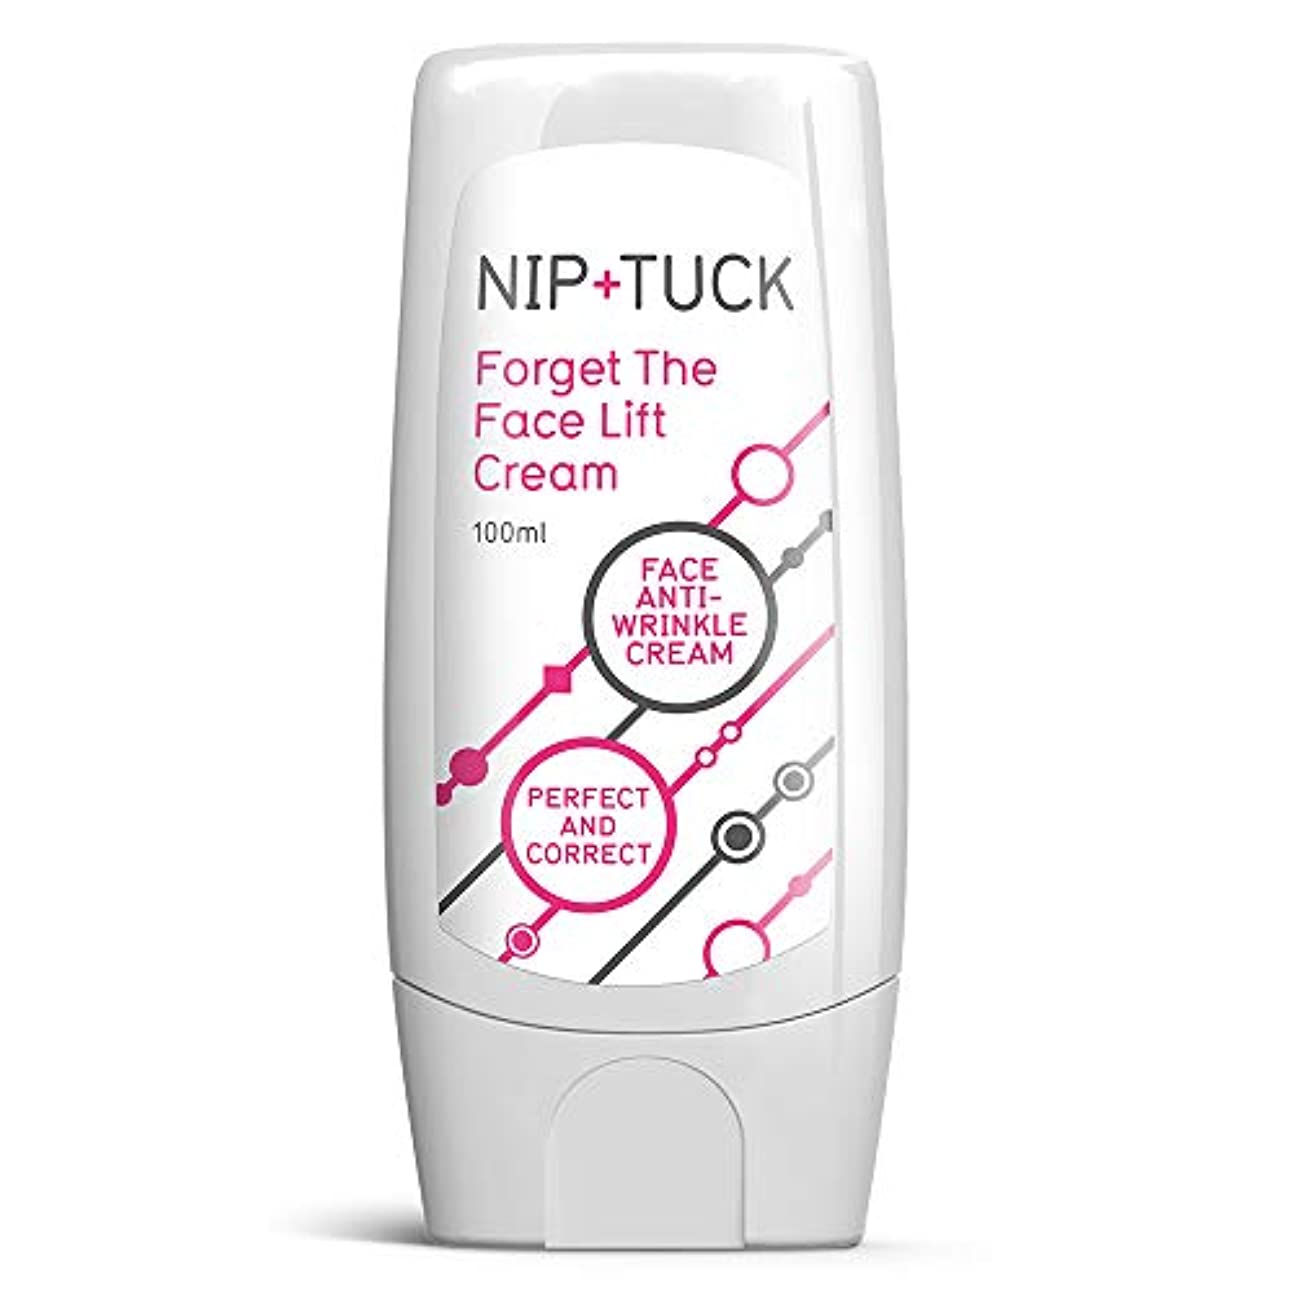 NIP & TUCK FORGET THE FACELIFT CREAM Nippu& takku wa, anchikurinkufeisu& anchirinkurukurīmufāmu& 若く見える肌を